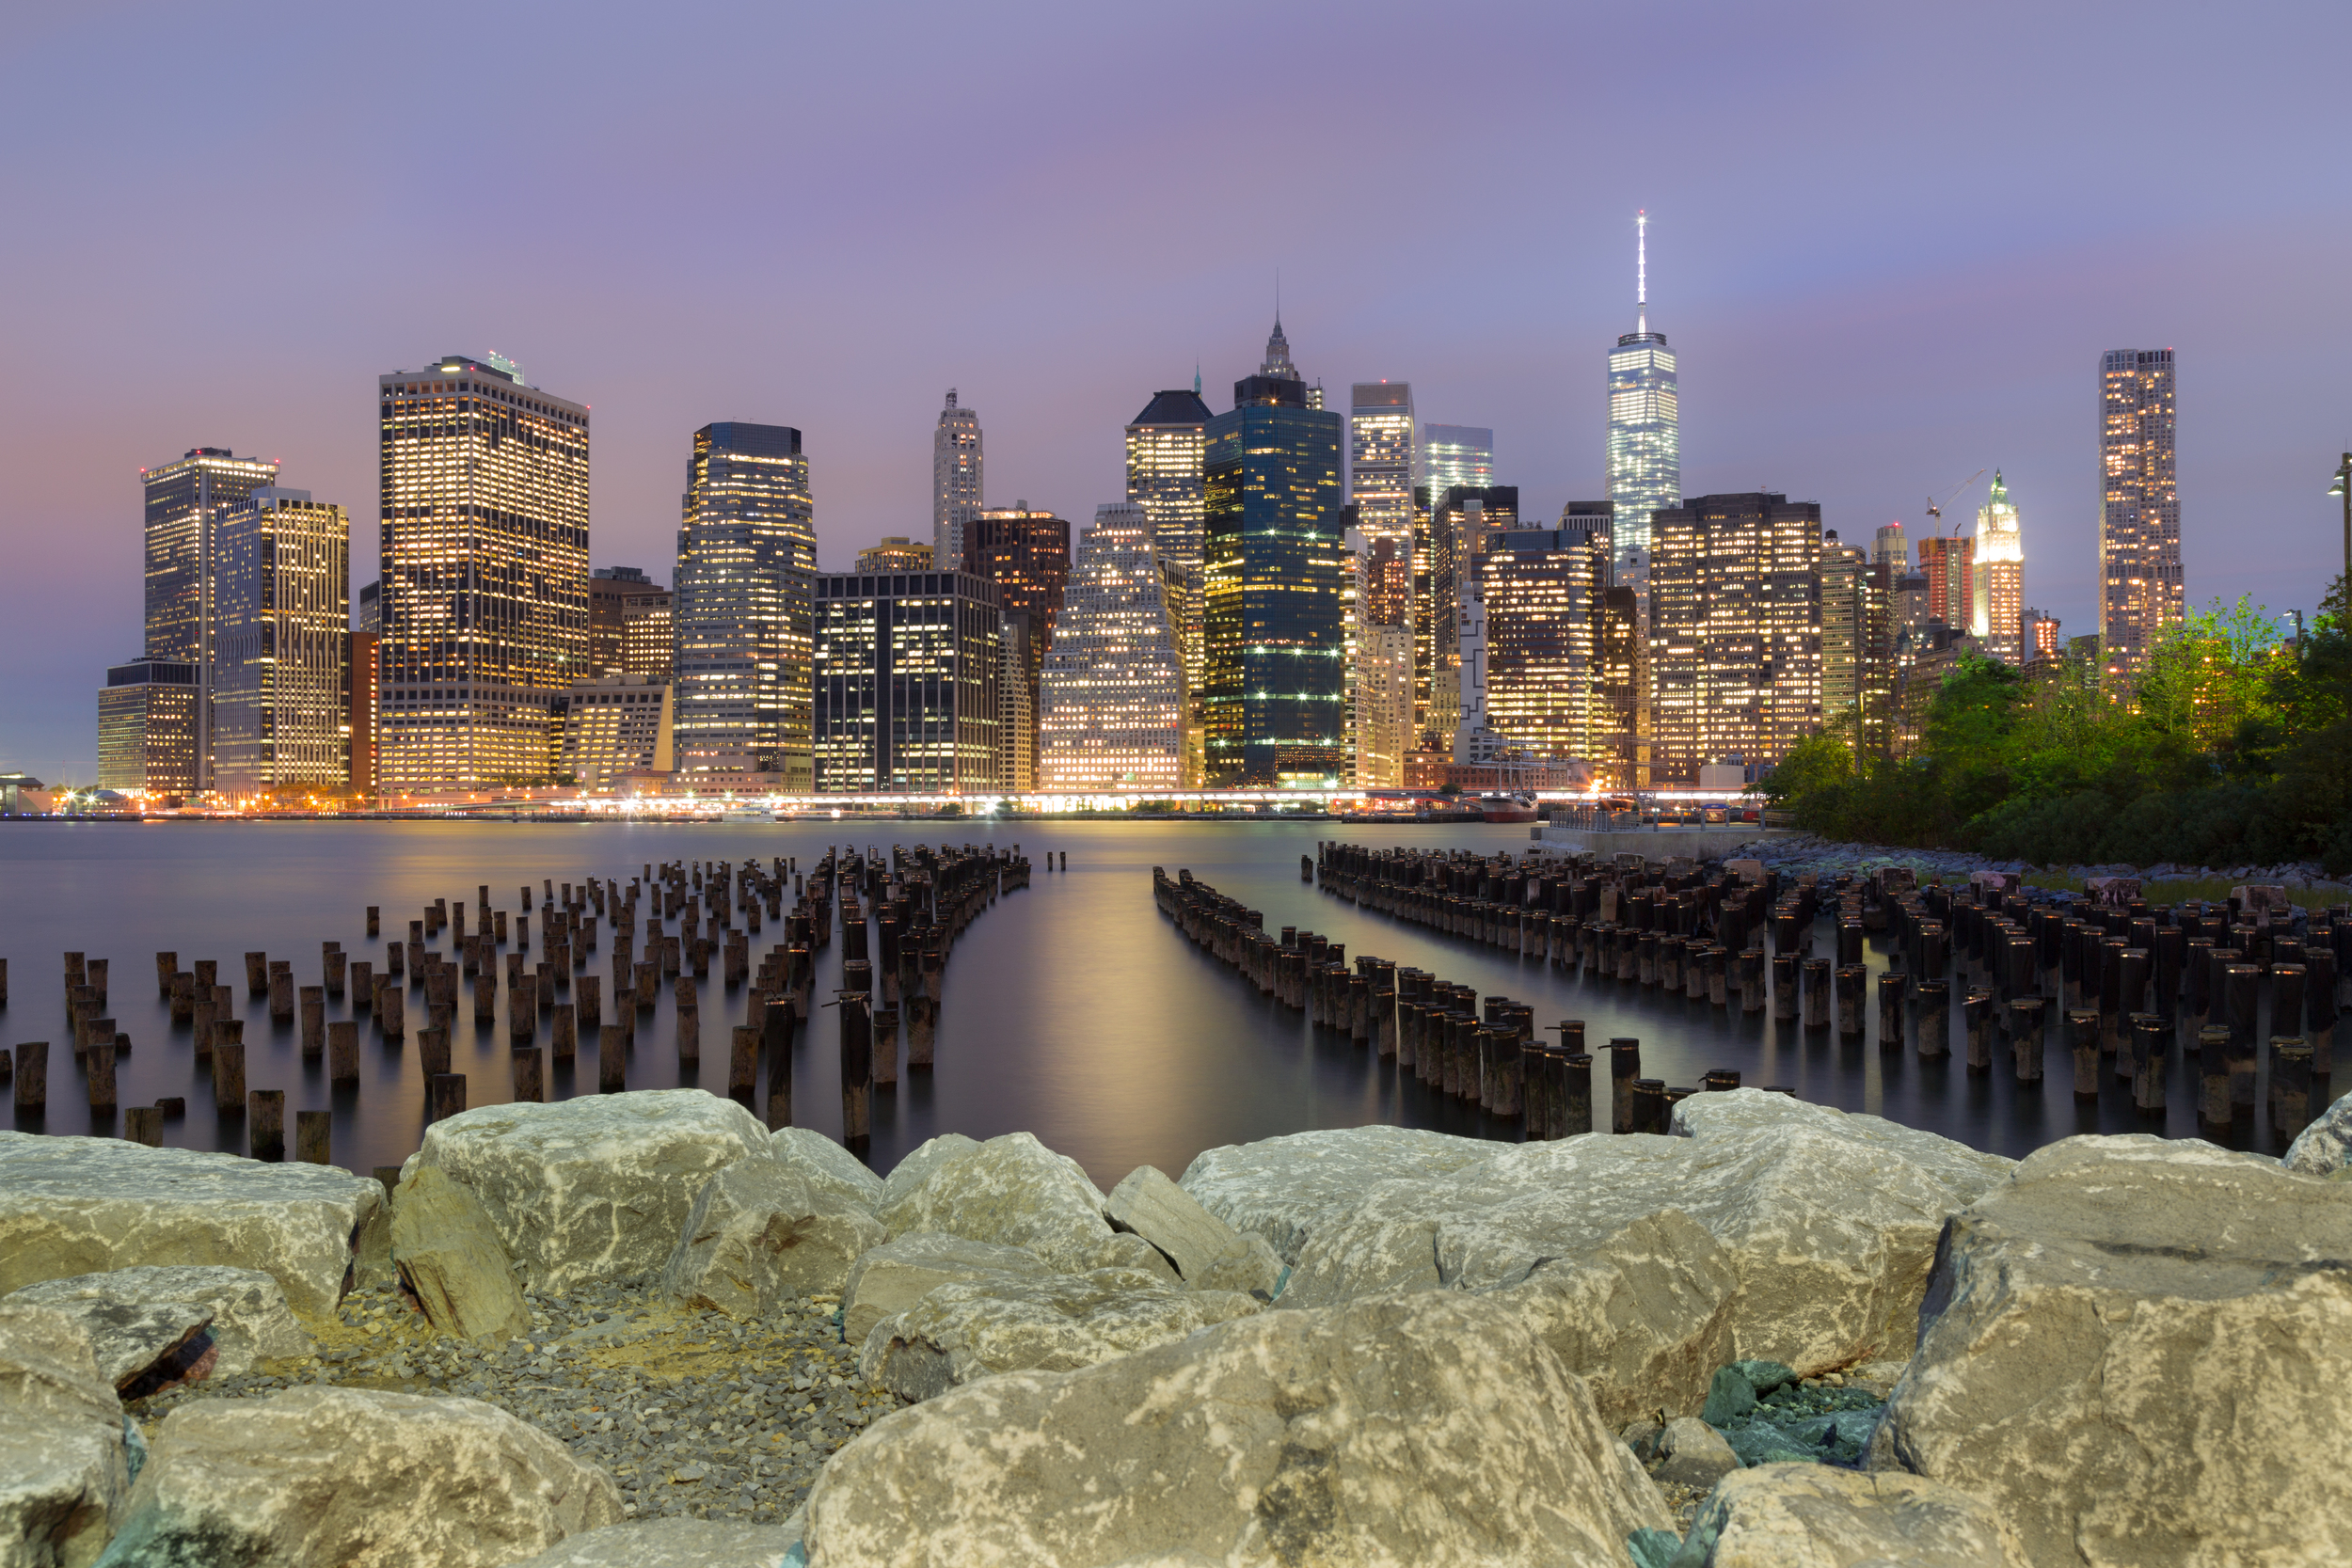 On the East River